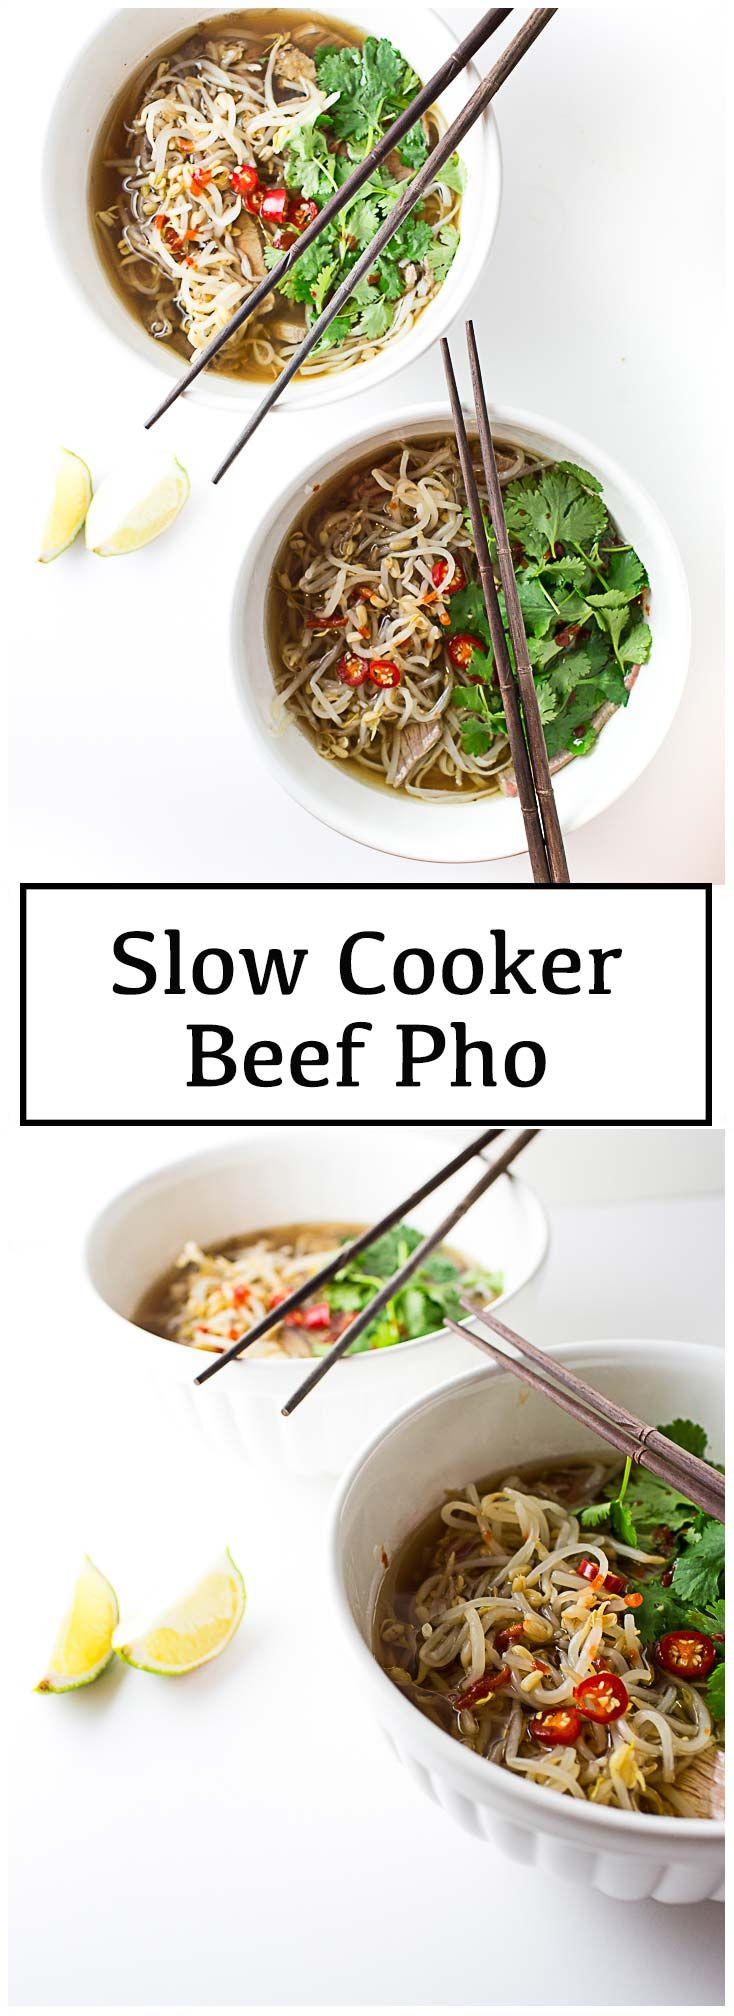 Slow Cooker Beef Pho.  #slowcookerbeef #pho #crockpotpho #crockpotrecipes